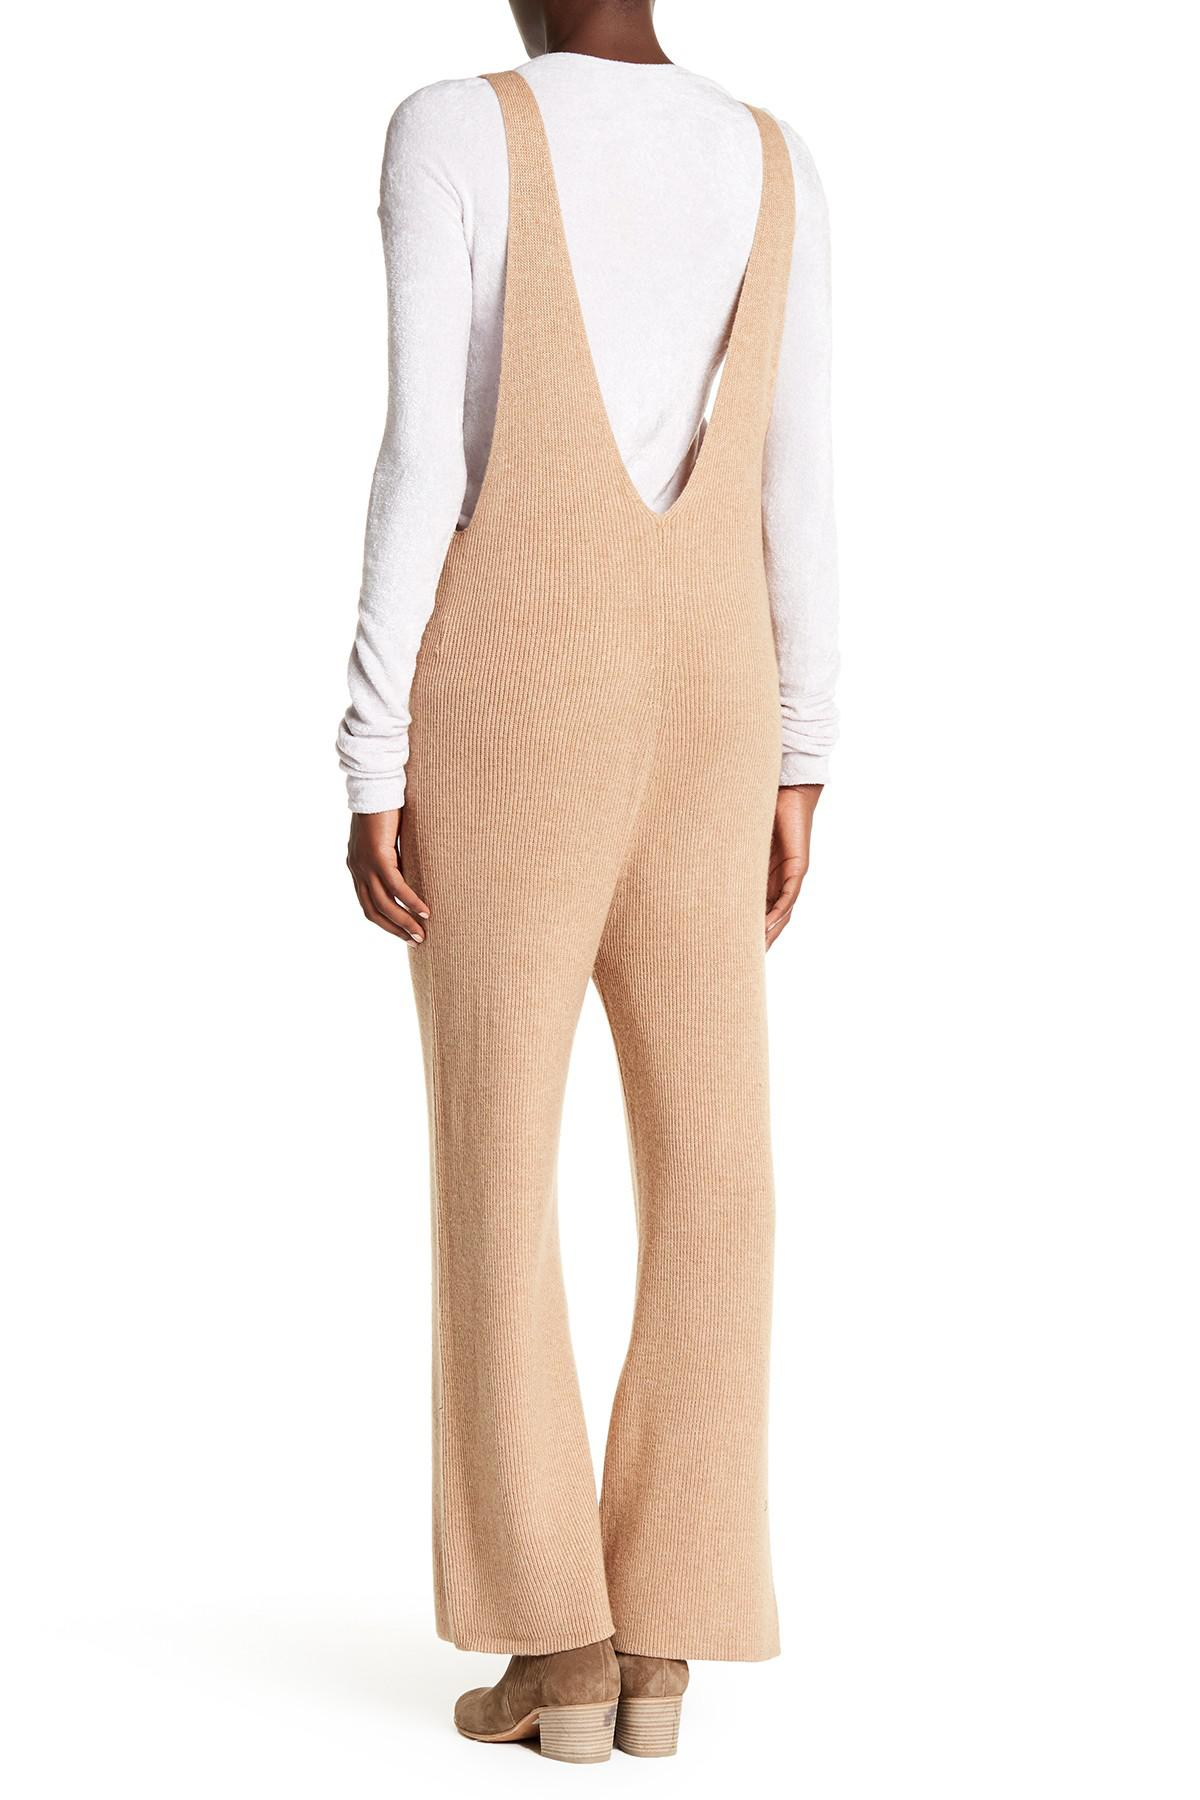 6be622d20b1 Lyst - Free People V-neck Knit Jumpsuit in Natural